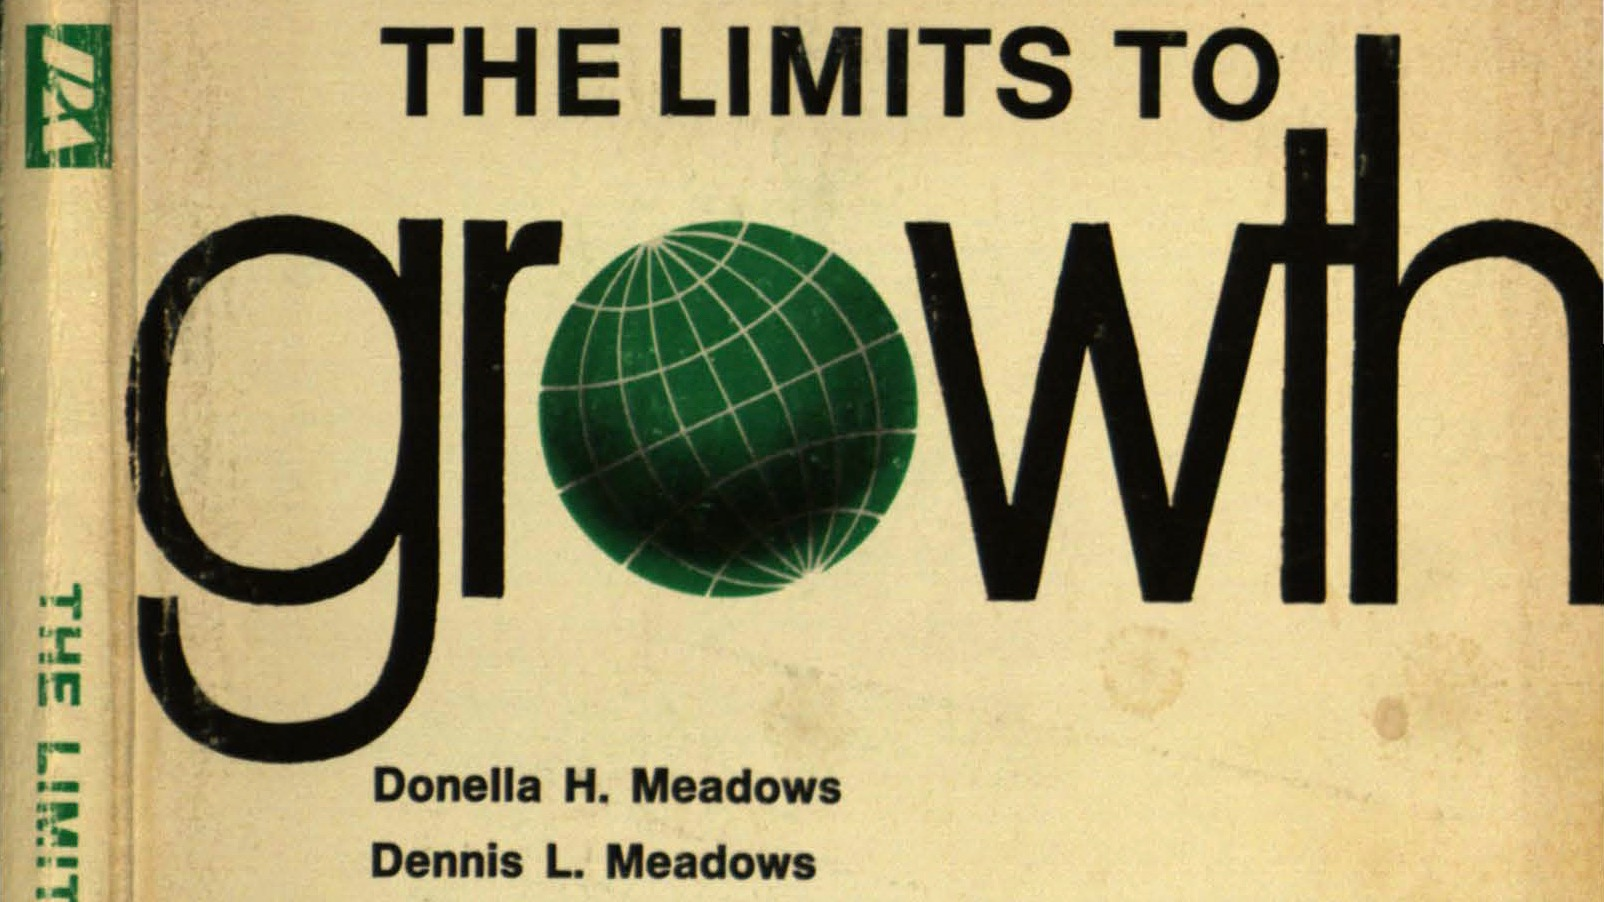 cover of the book The Limits to Growth by Donella Meadows et al